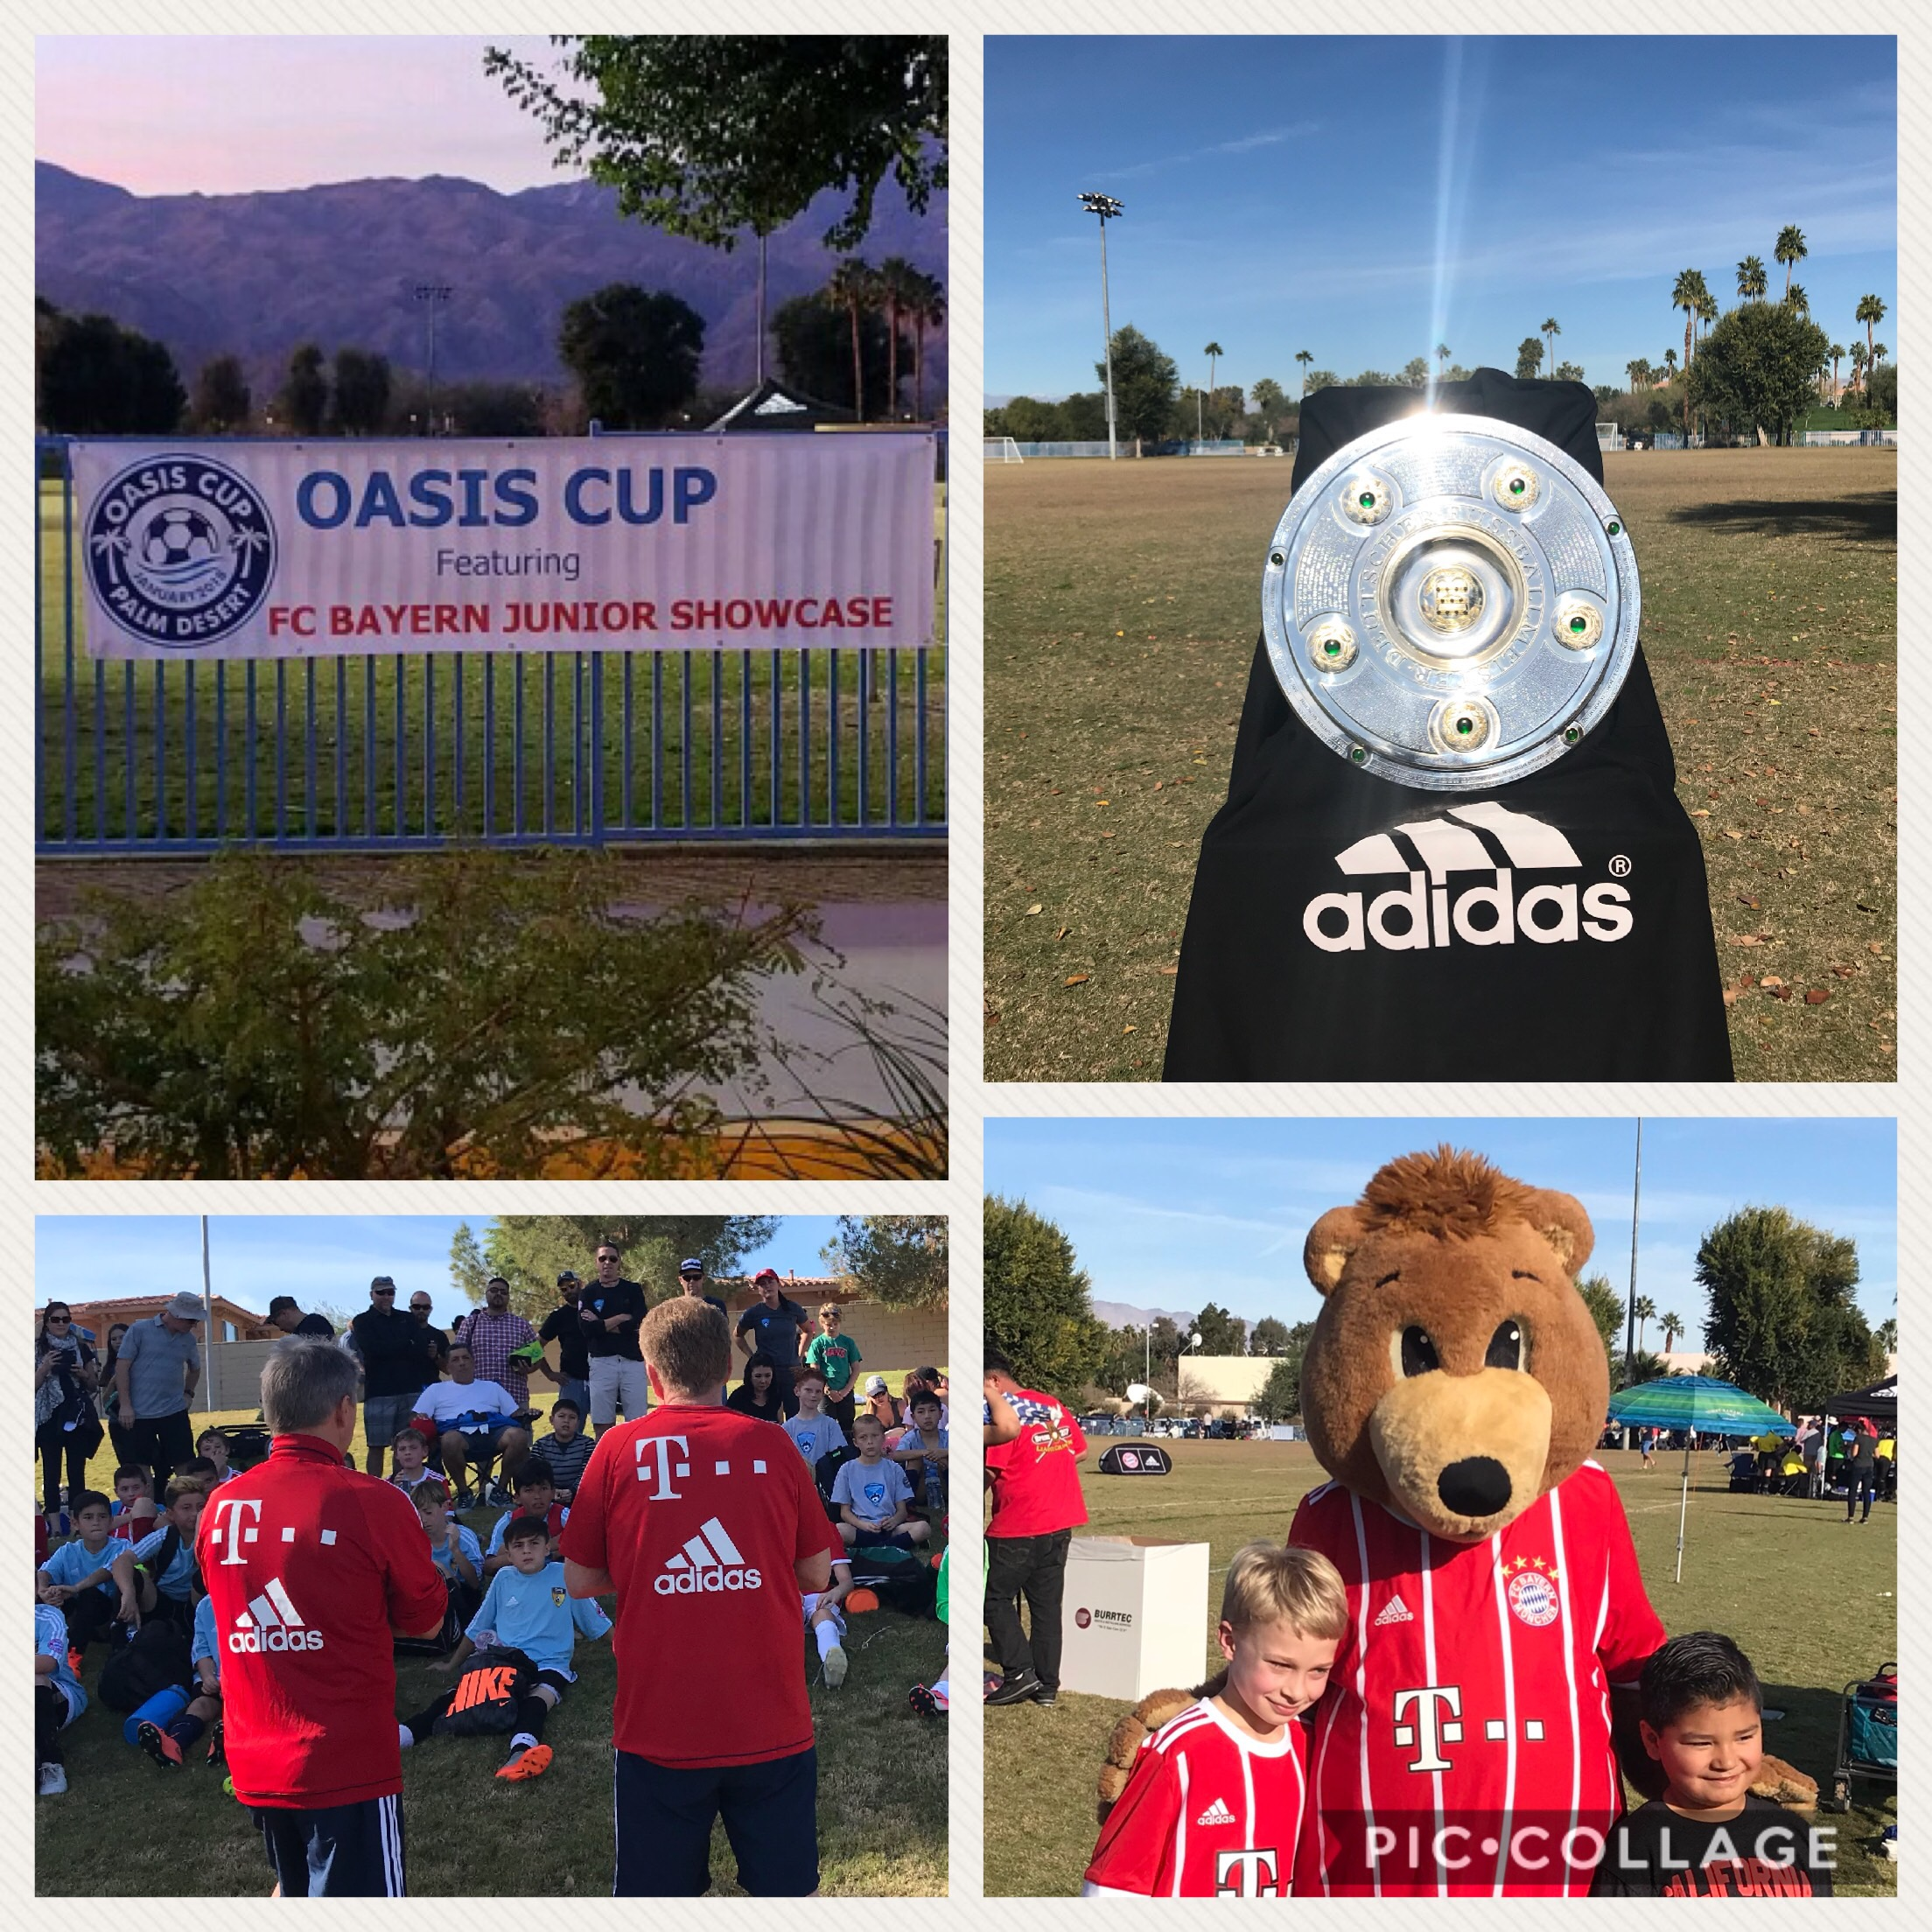 Oasis Cup featuring FC Bayern Junior Showcase